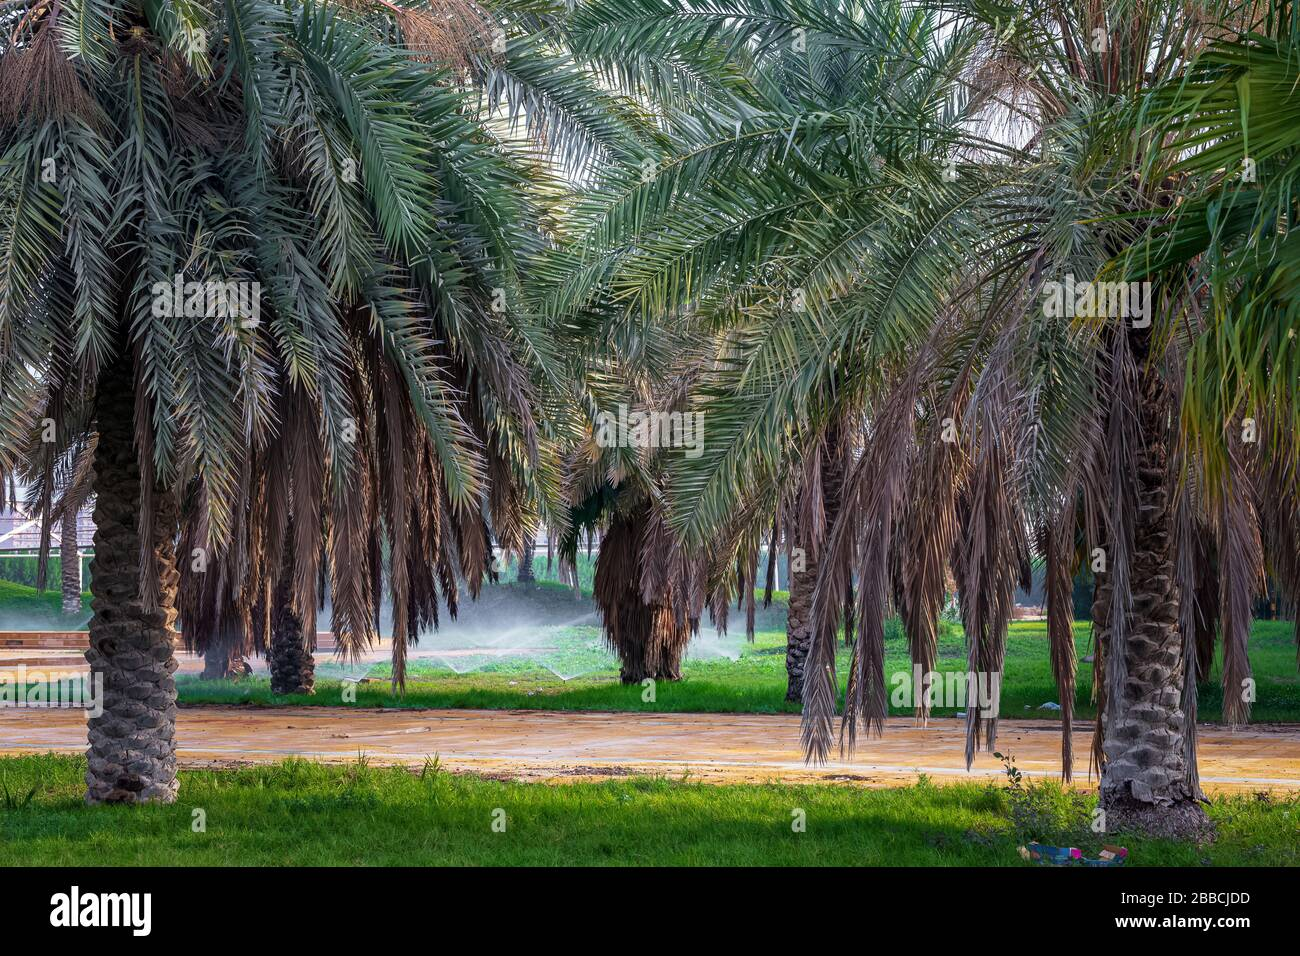 Saudi Arabia Fruit High Resolution Stock Photography And Images Alamy